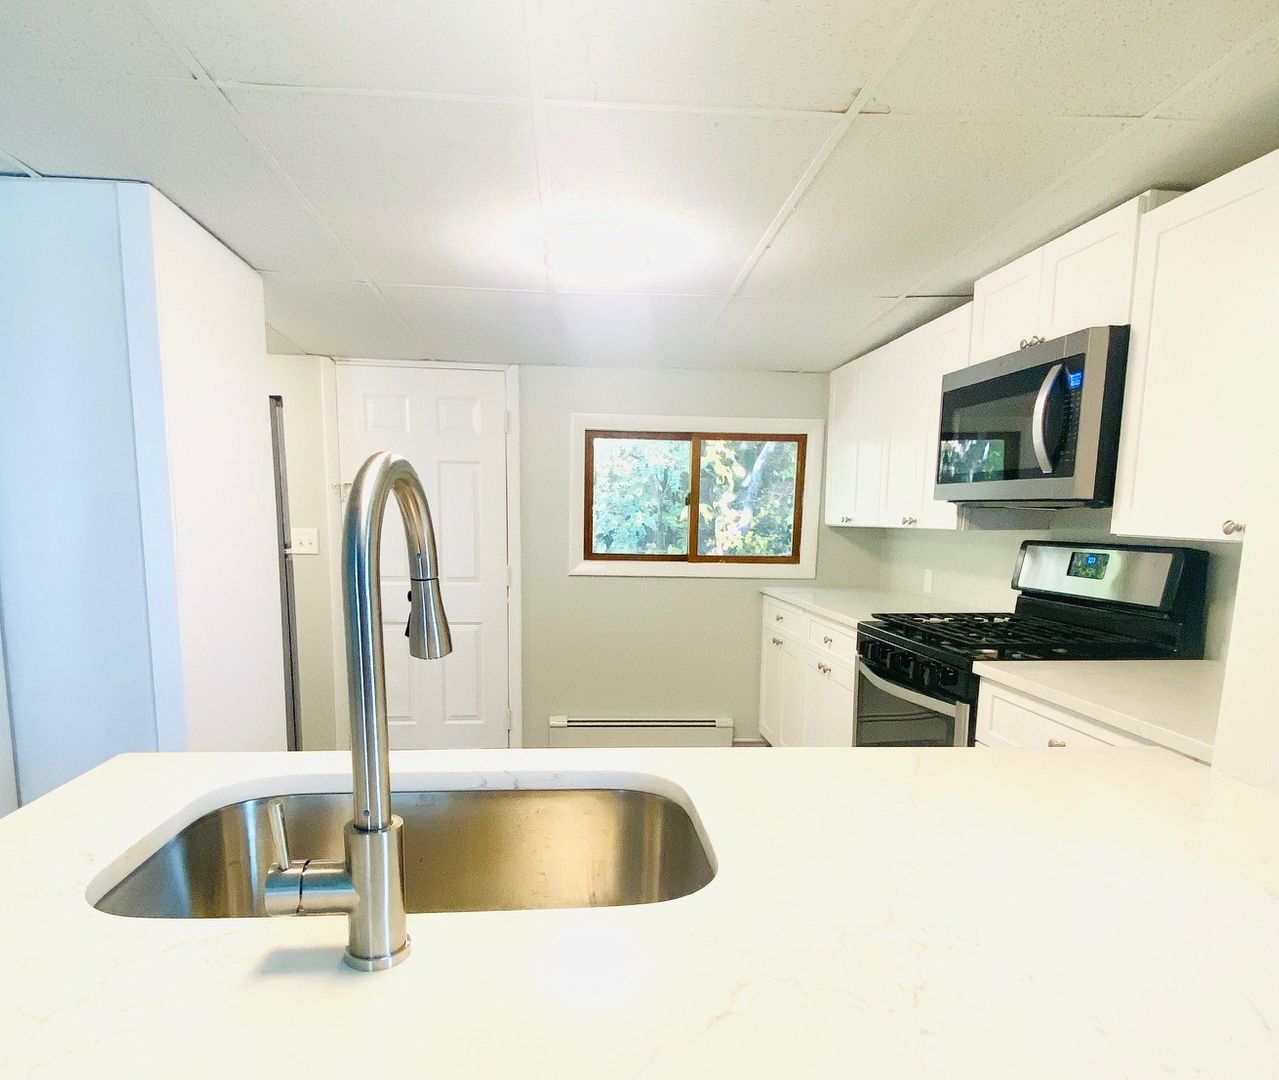 1 Bed, 1 Bath apartment in Boston for $2,000